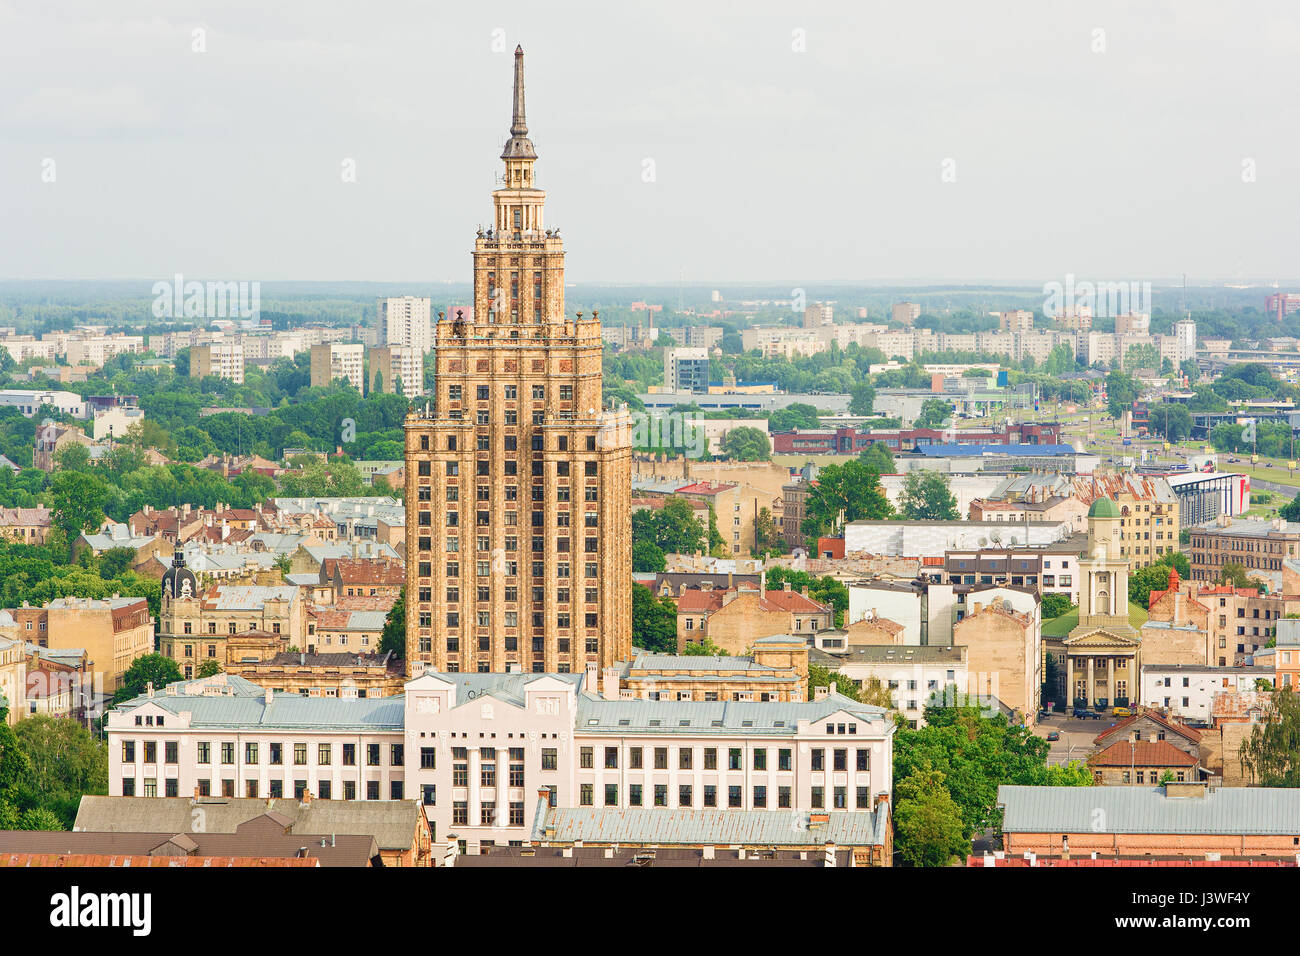 Latvian Academy of Science in Riga (Latvia) - Stock Image